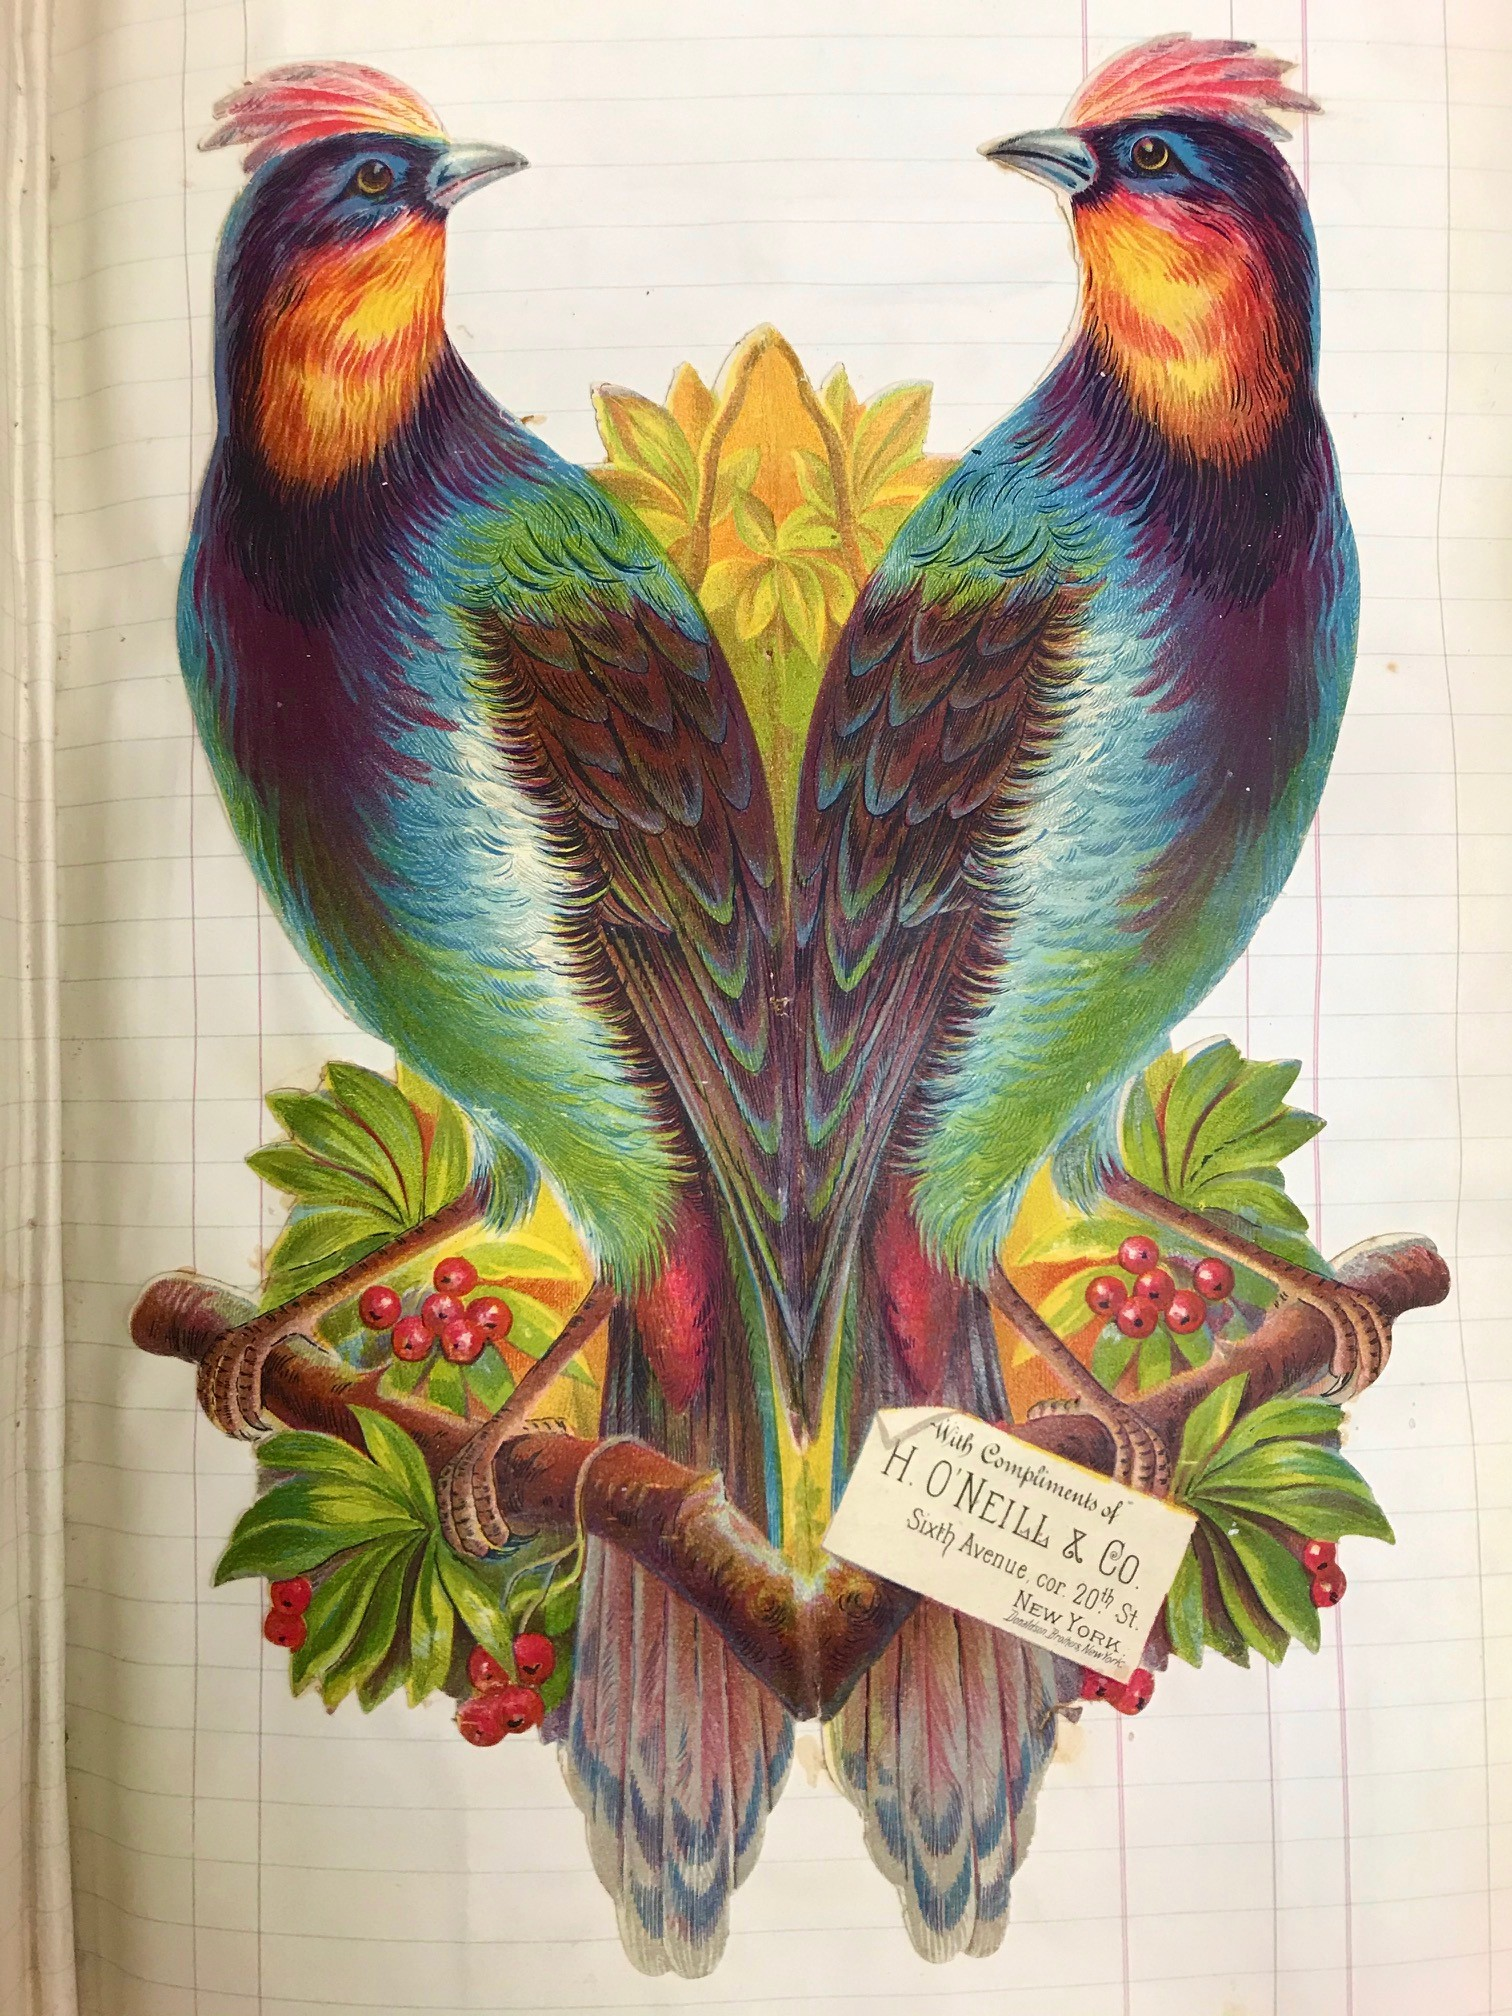 Two vibrant birds on an oversized trade card from H. O'Neill & Co., NYC, c. 1880.]